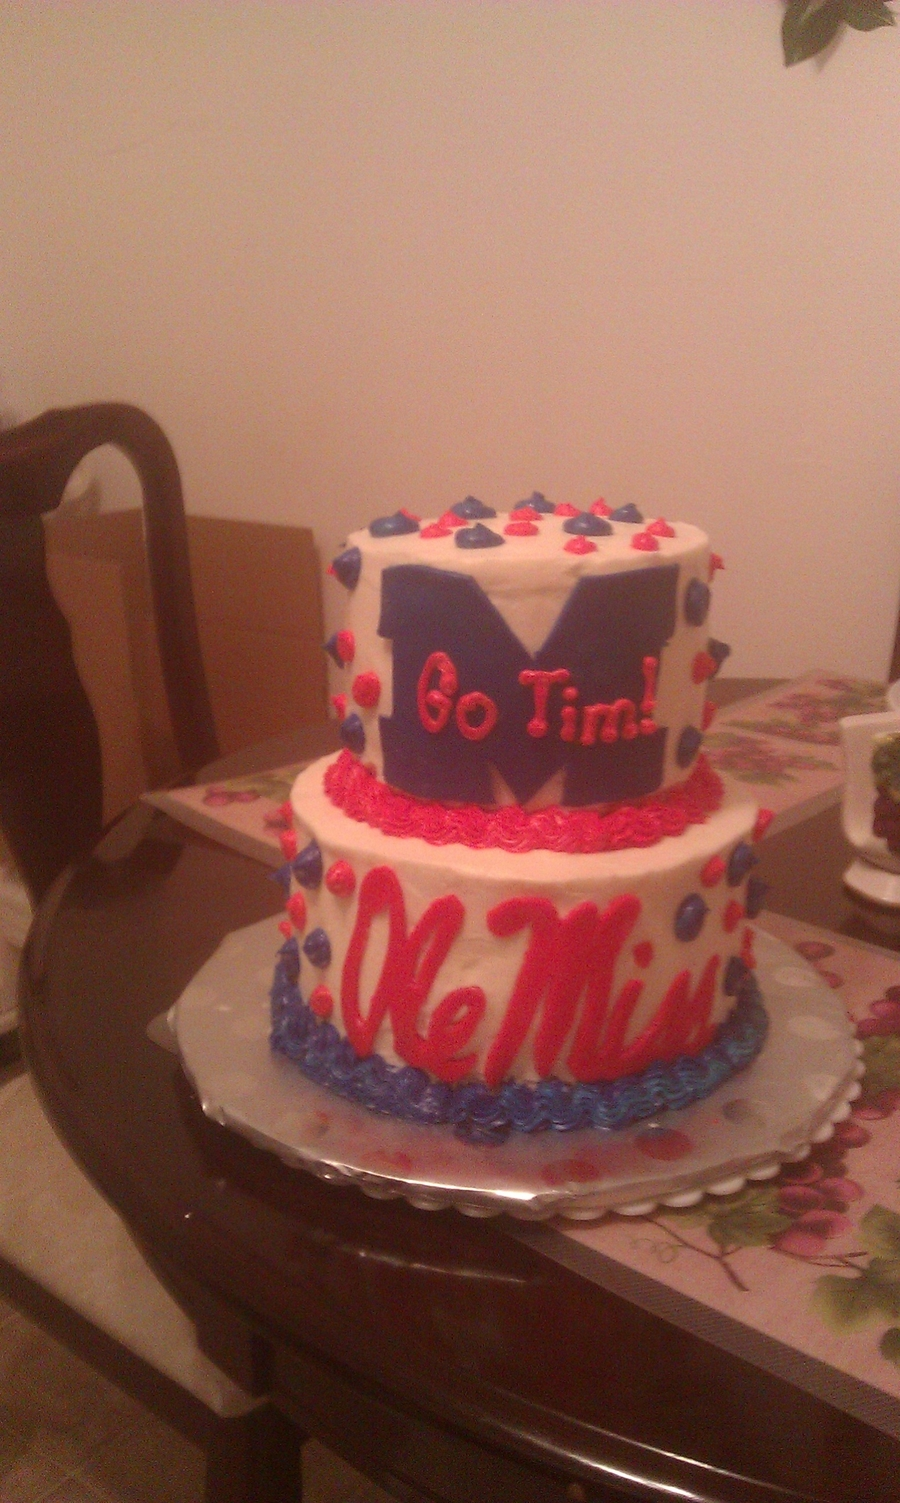 Ole Miss Fan on Cake Central